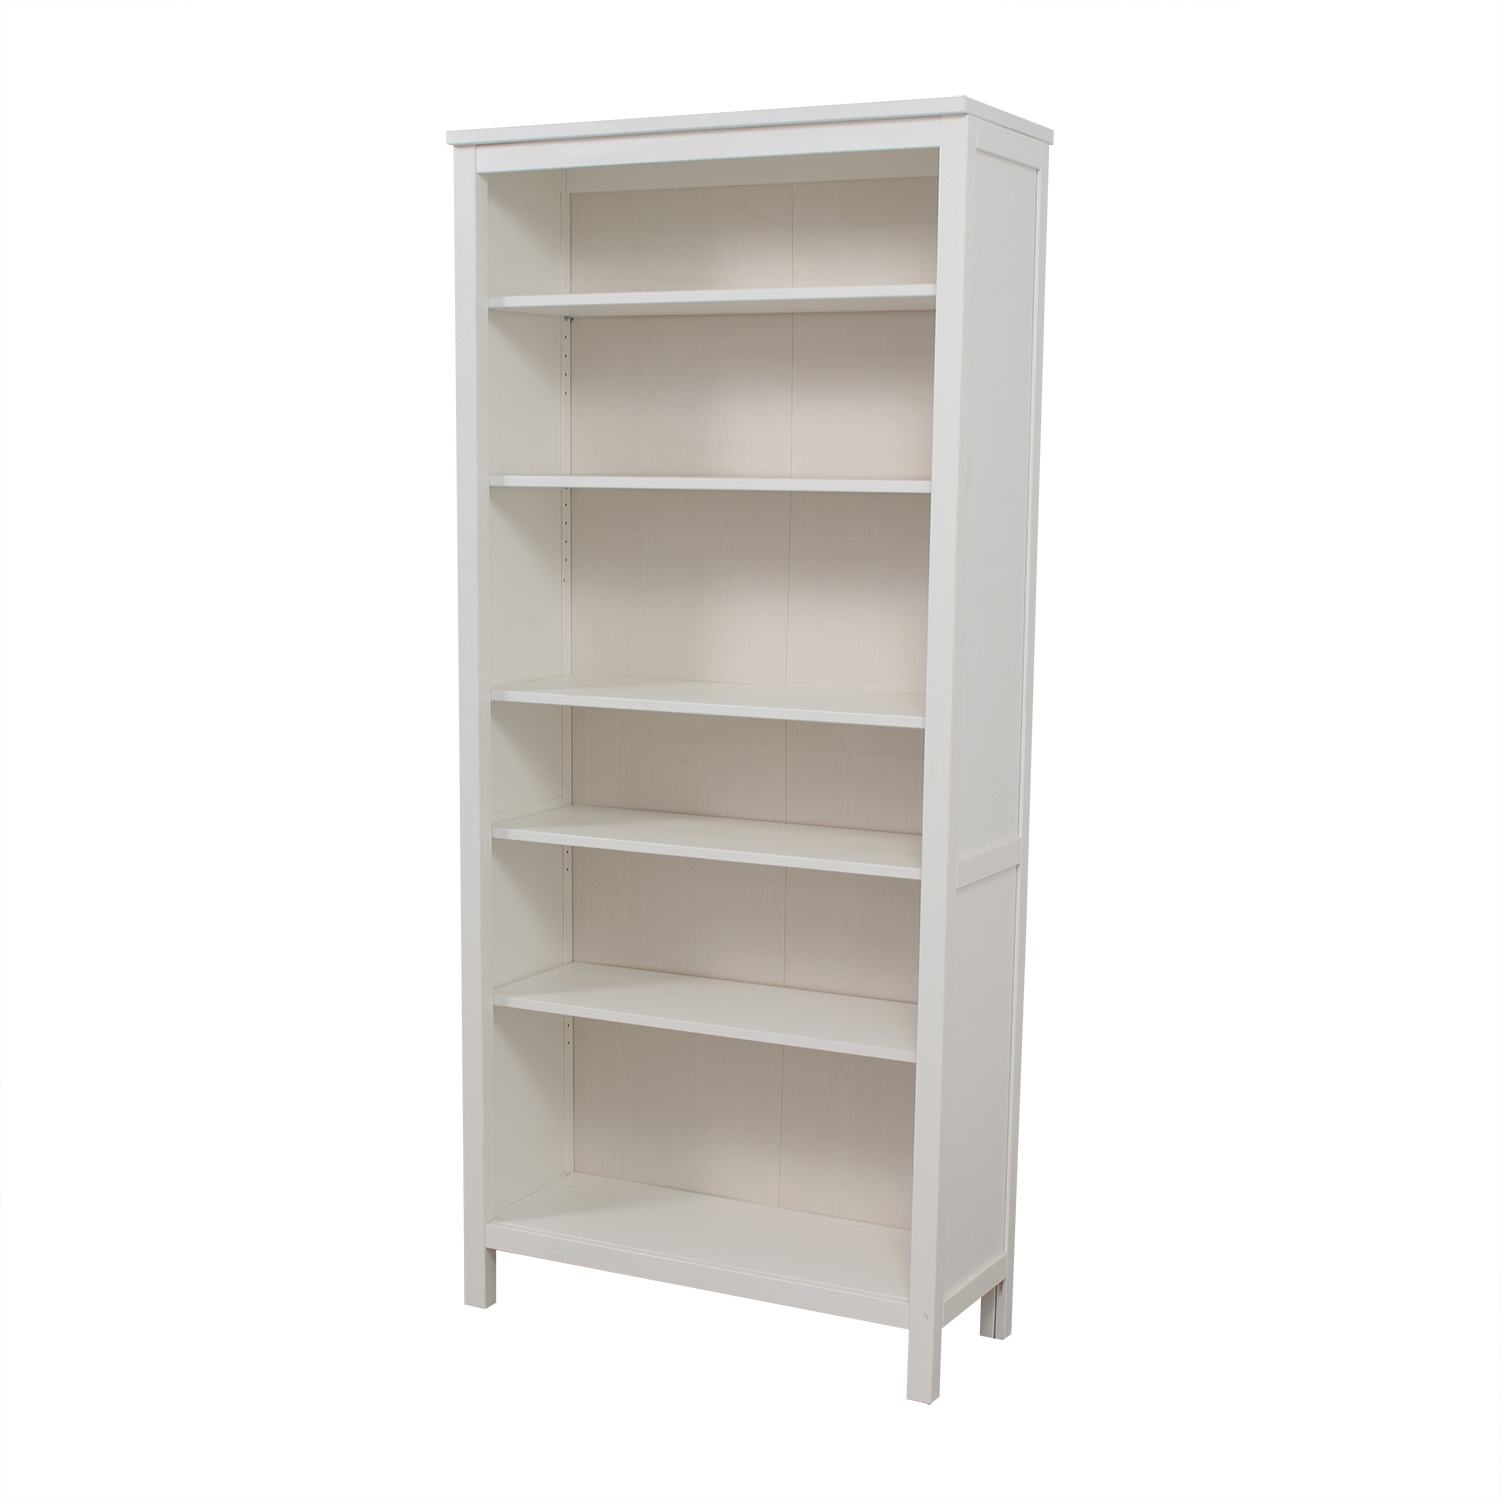 53% OFF IKEA IKEA White Hemnes Bookshelf Storage